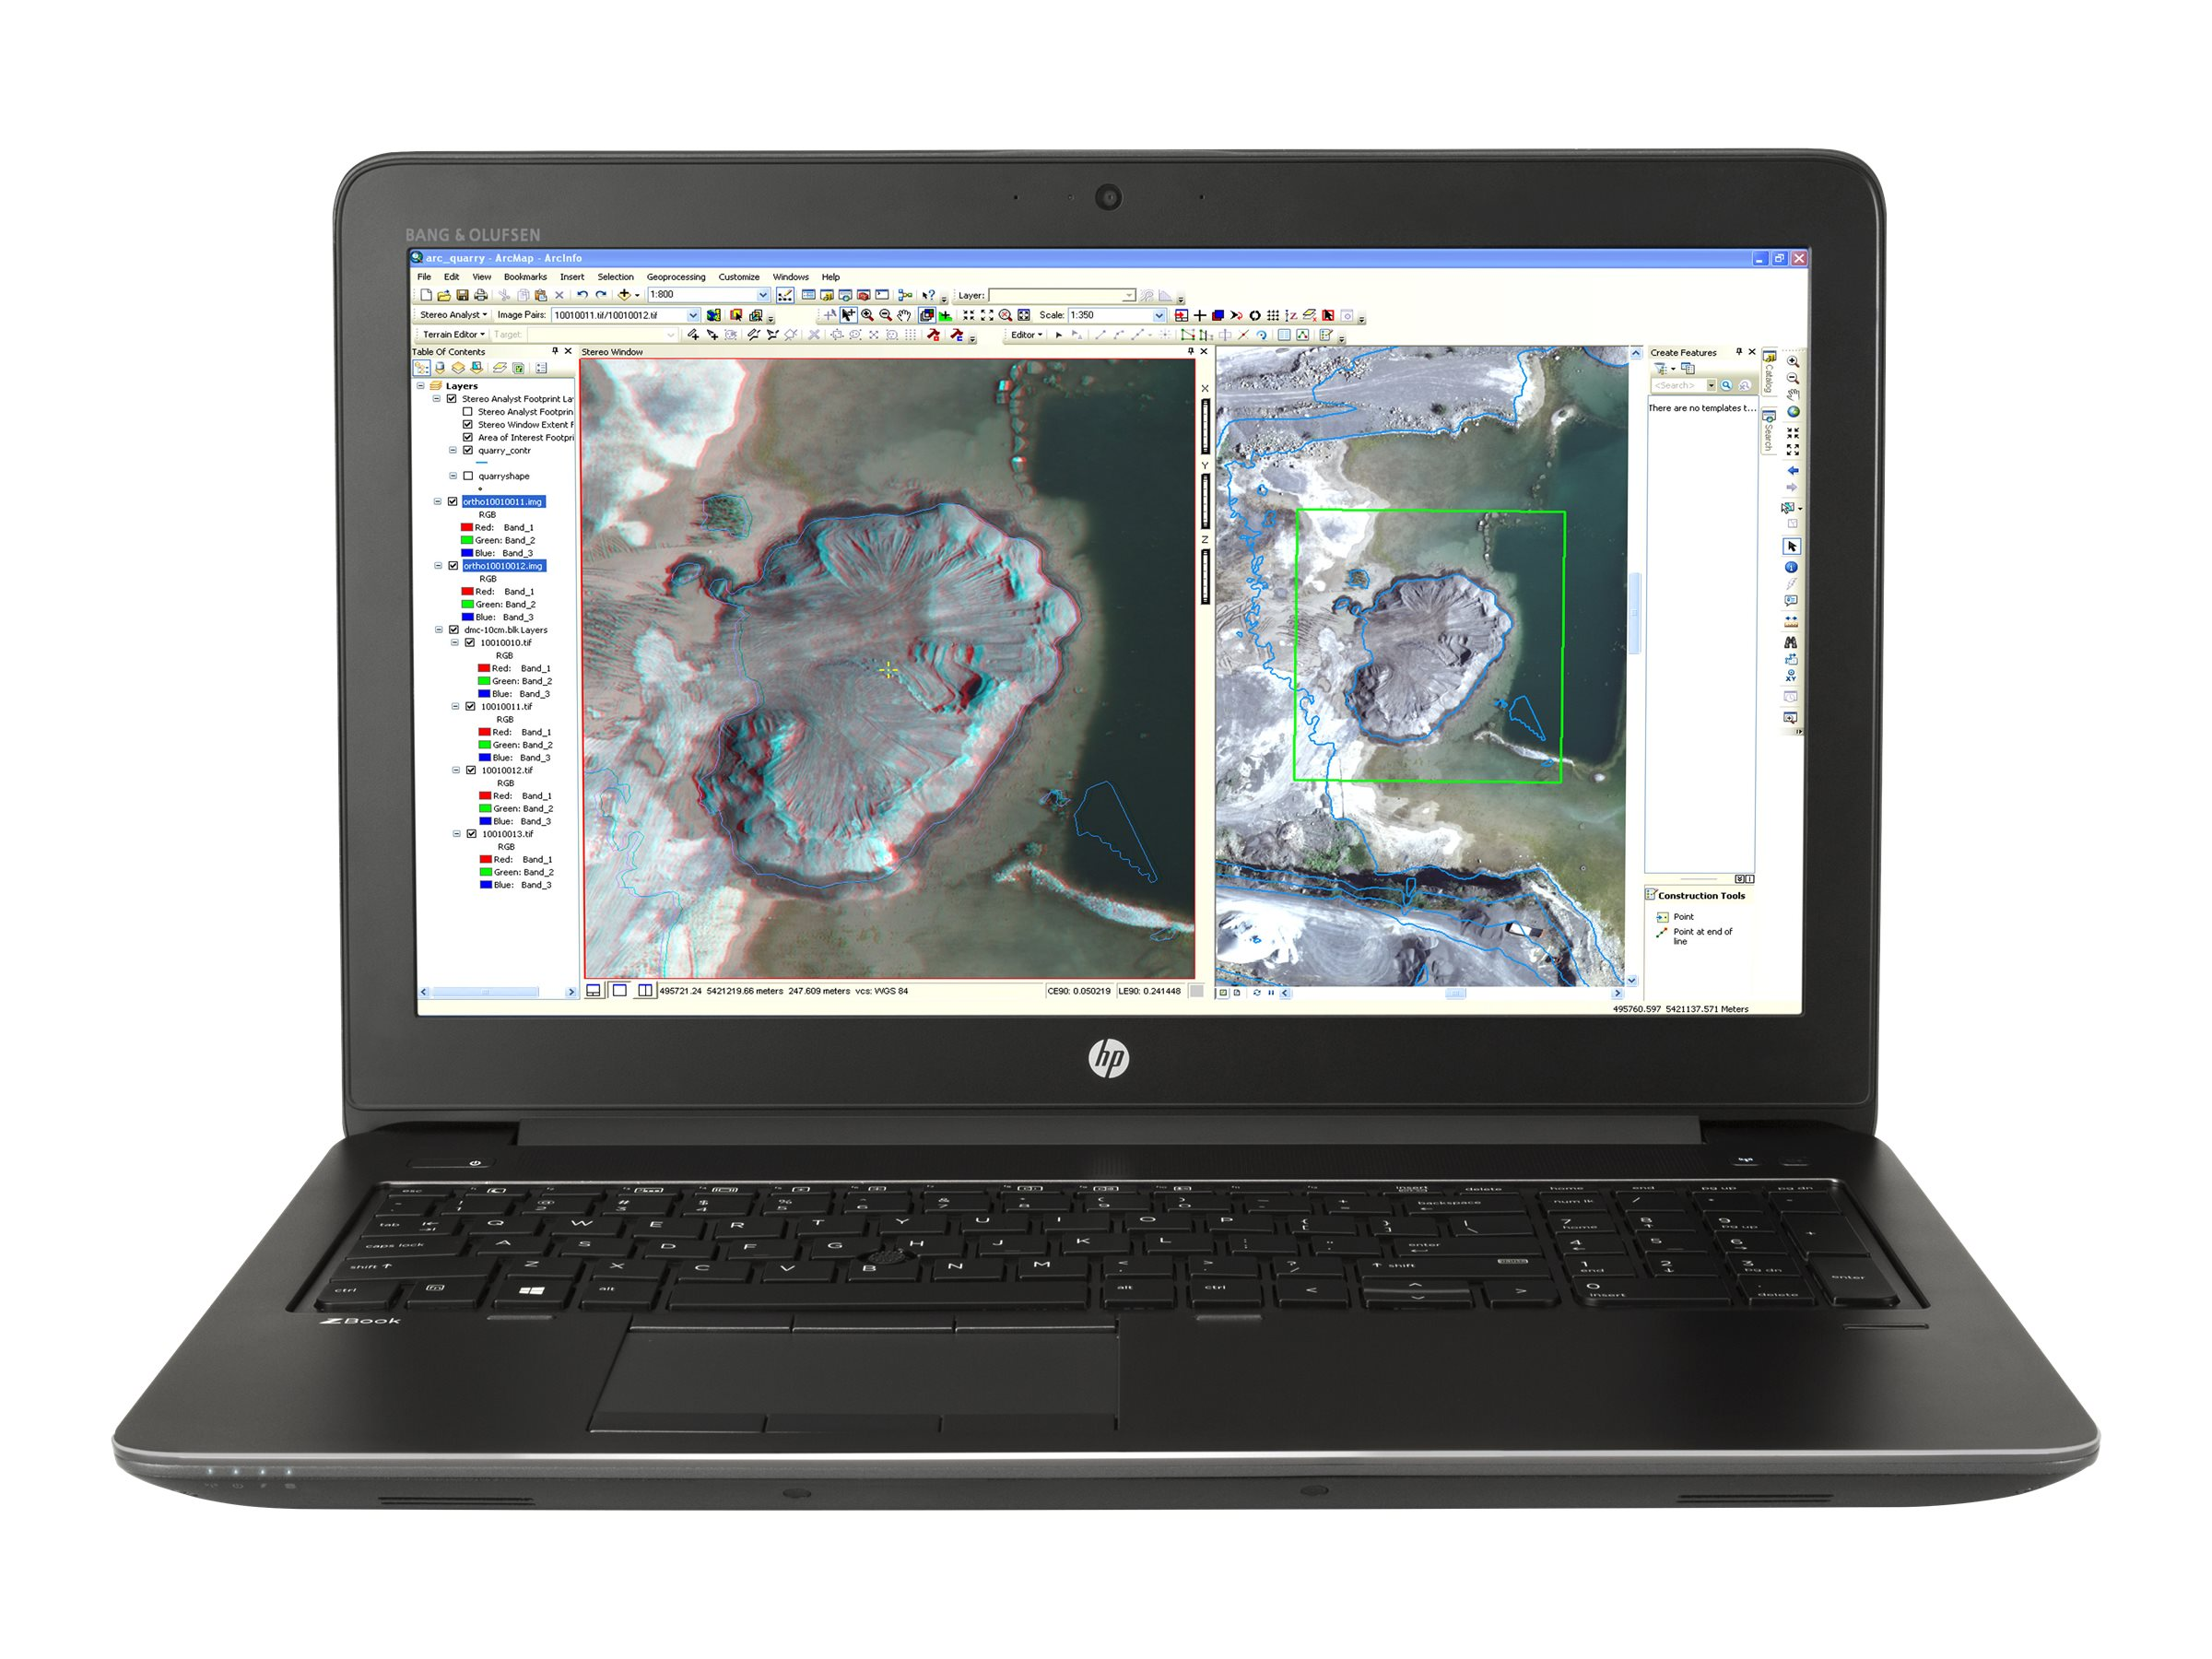 HP ZBook 15 G3 Core i7-6820HQ 2.7GHz 8GB 256GB ac BT FR WC 9C M1000M 15.6 FHD W7P64-W10P